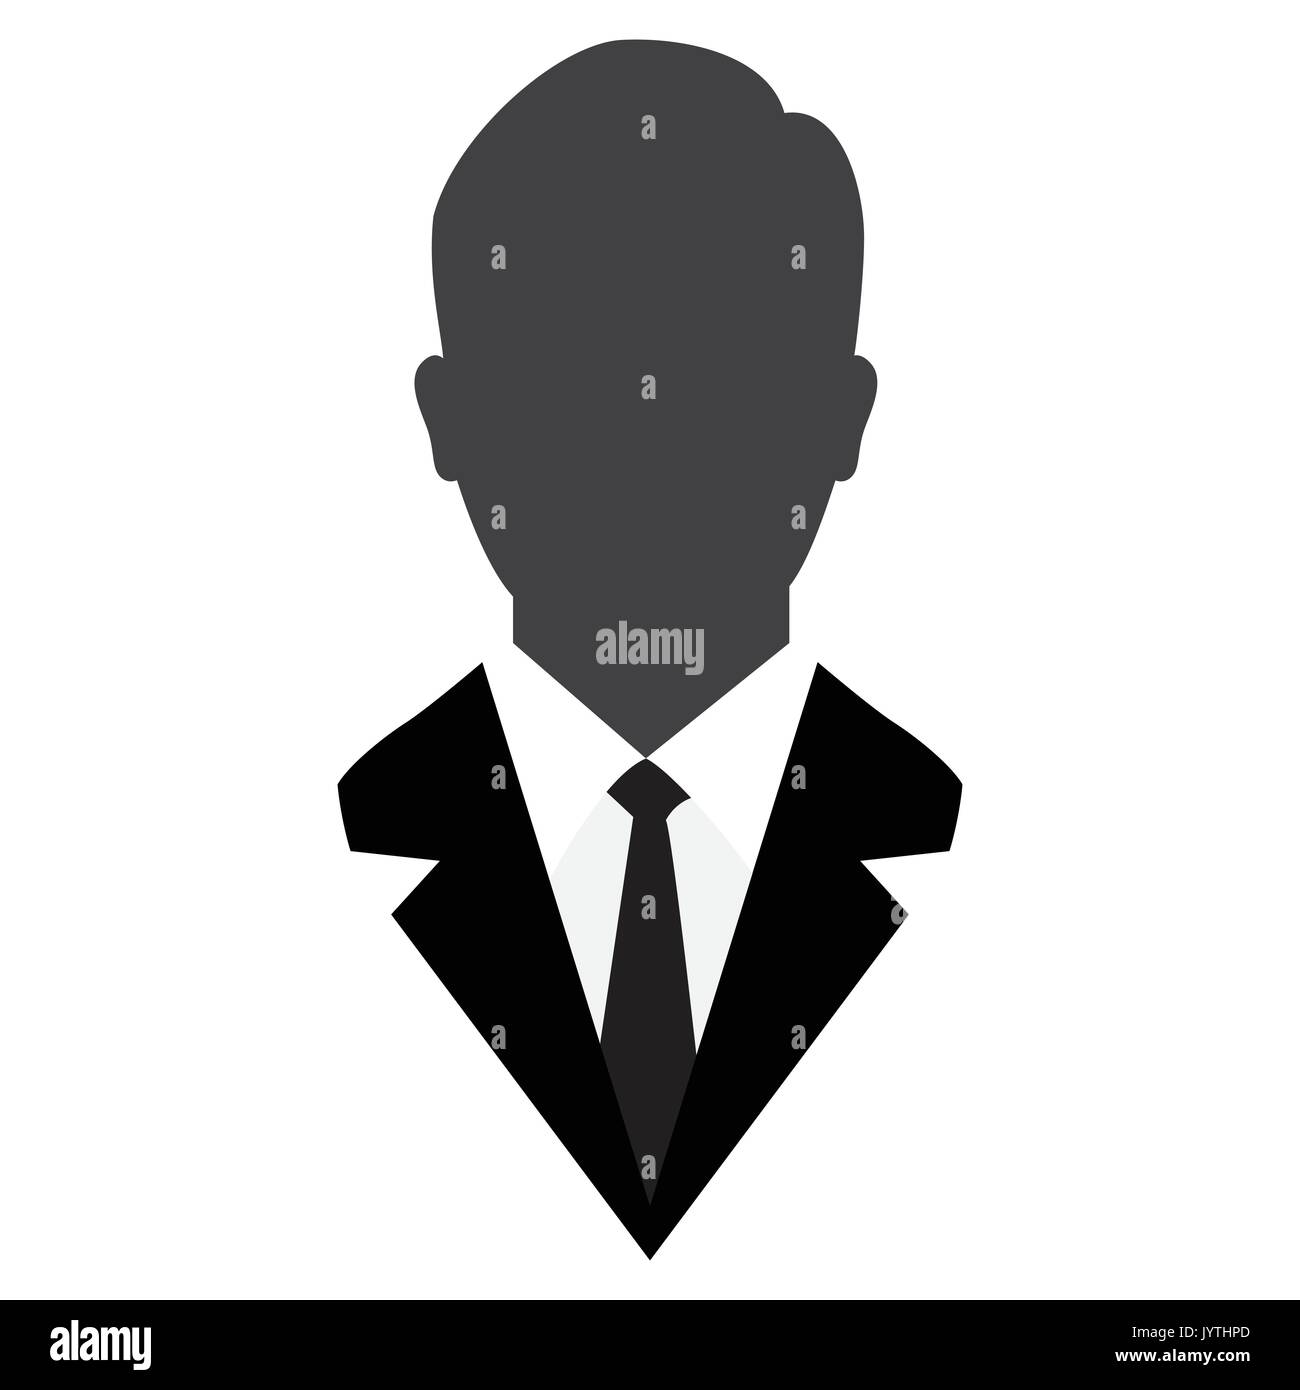 Suit vector vectors stock photos suit vector vectors stock images male avatar in business suit user icon iconic symbol on white background vector publicscrutiny Gallery